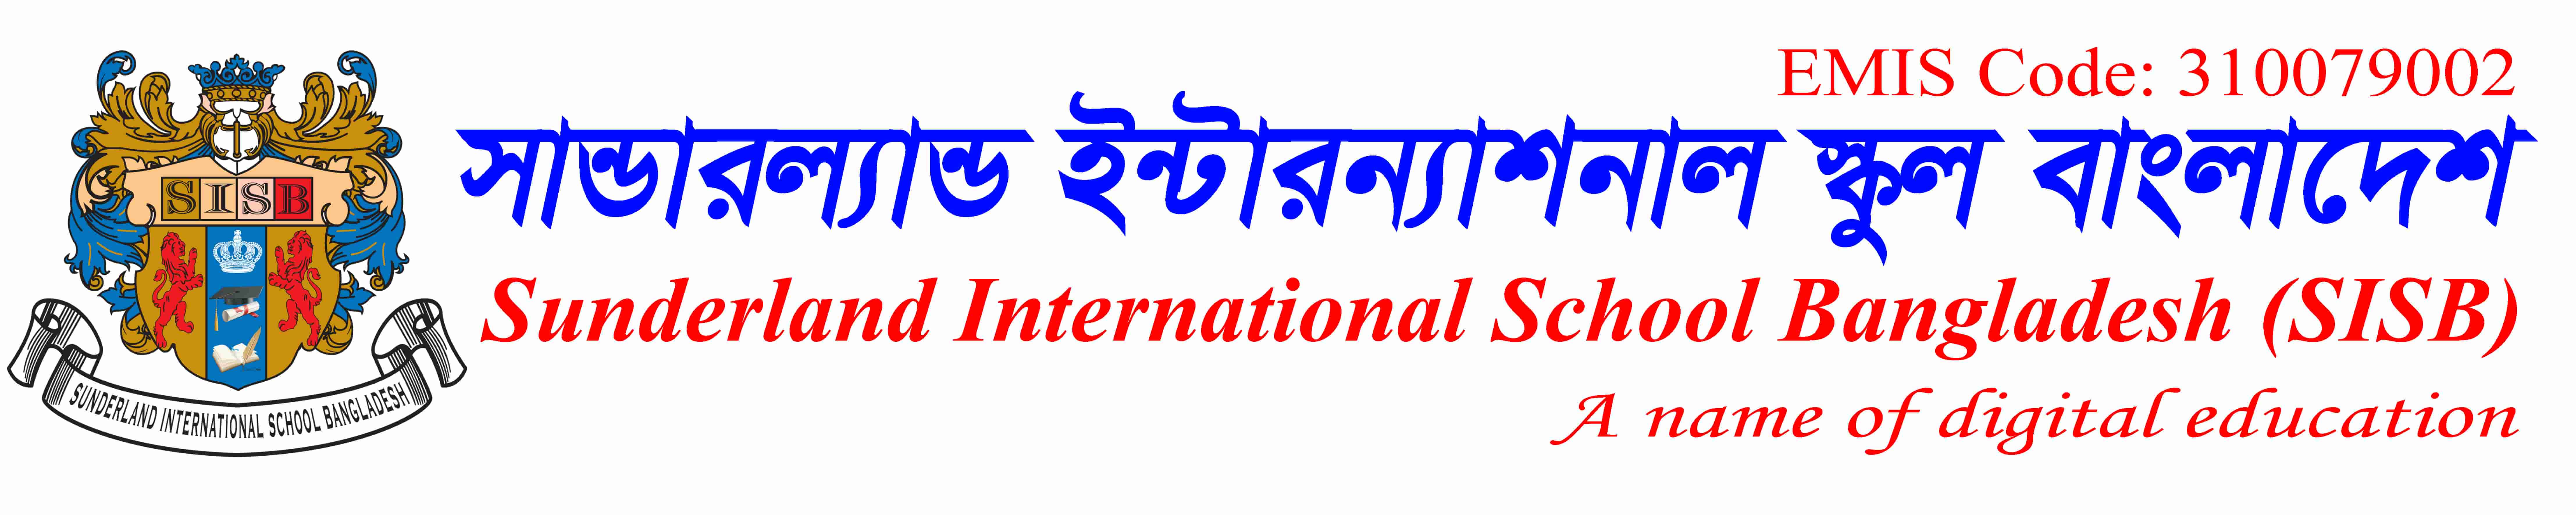 Sunderland International School Bangladesh (SISB)